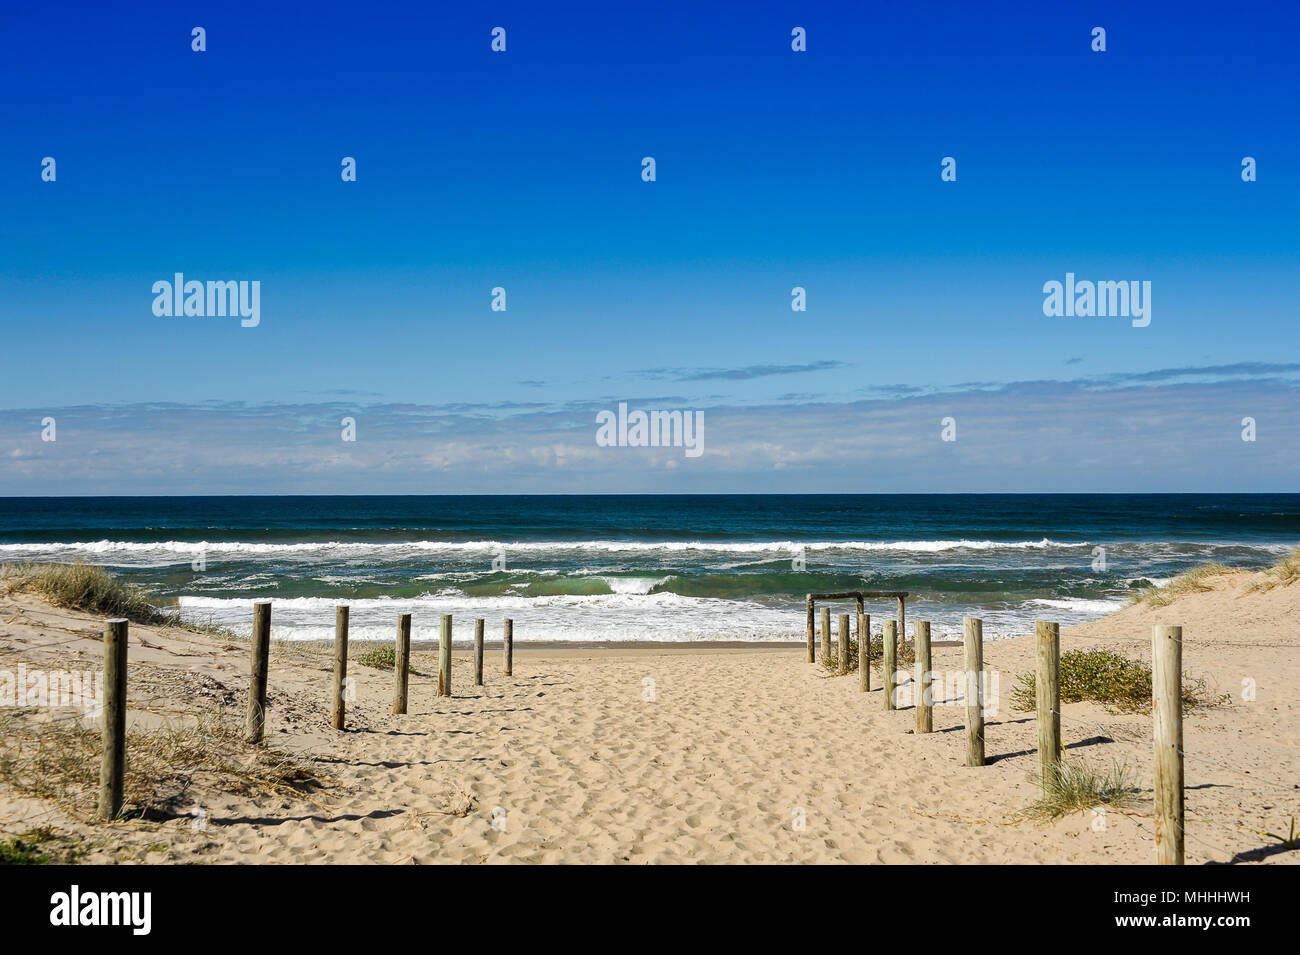 Pathway to the waves, Seven Mile Beach, NSW, Australia. Beautiful seascape, sandy track through the dunes, aquamarine water, white surf, deep blue sky - Stock Image